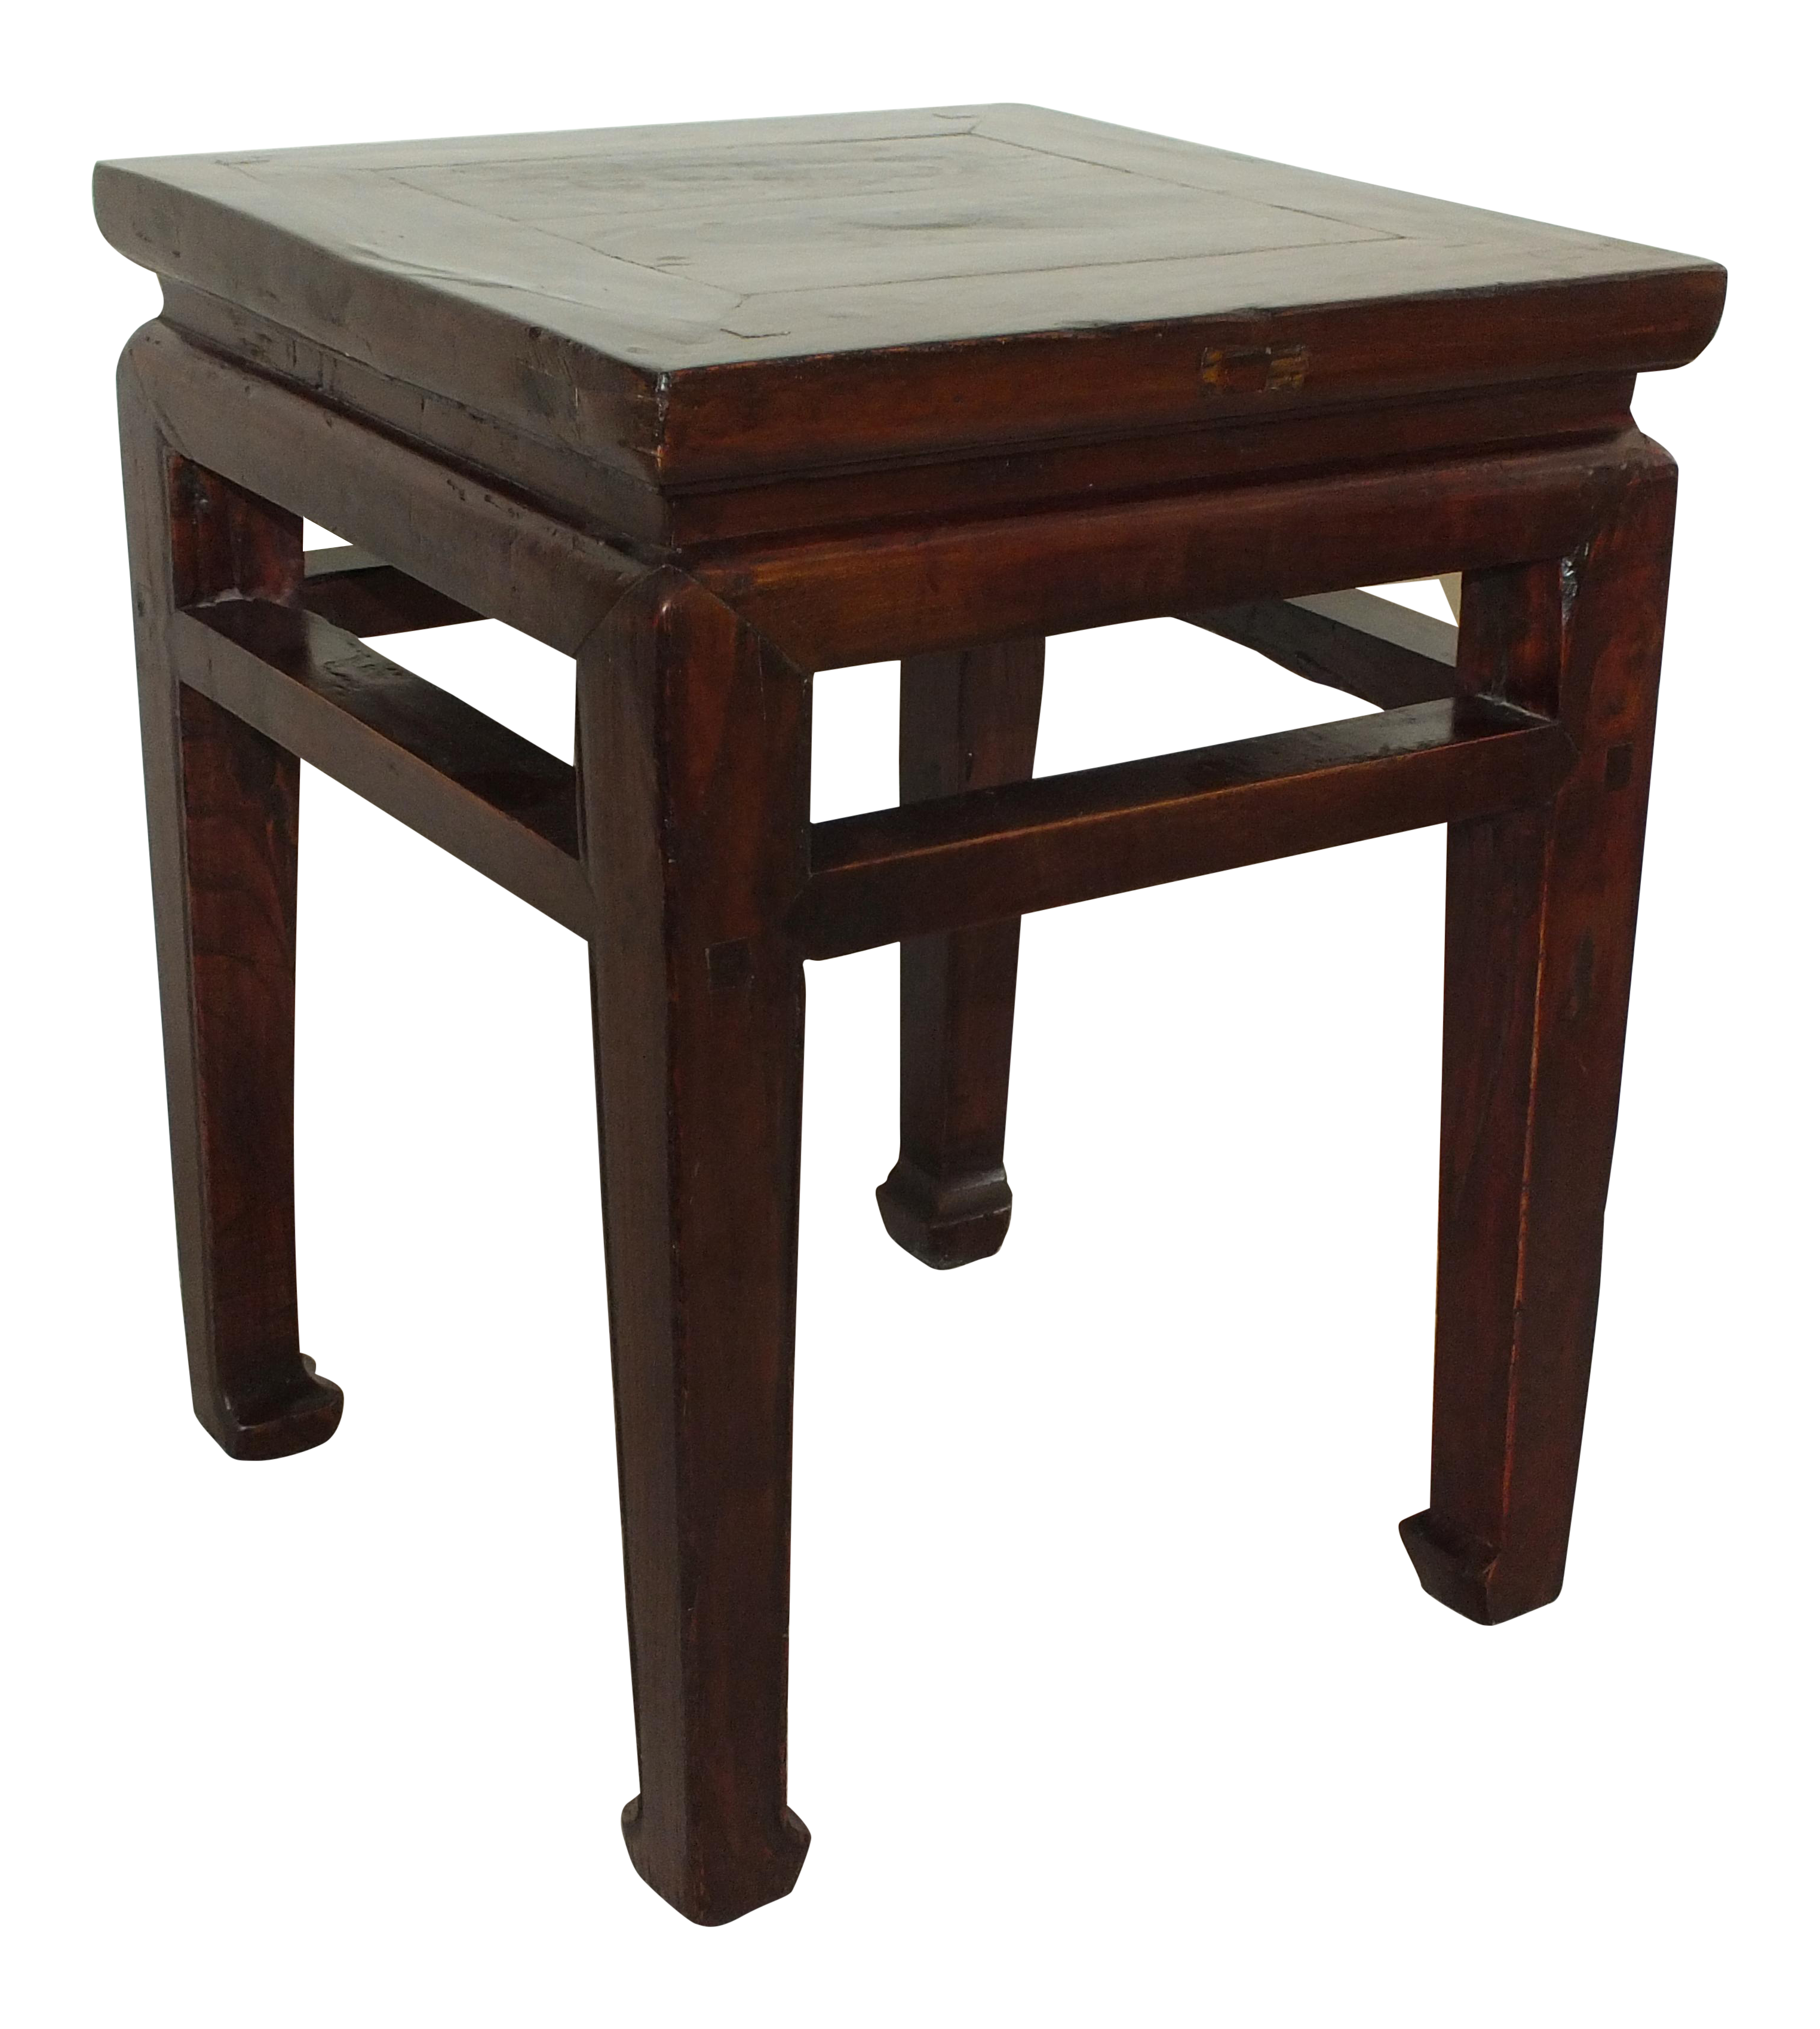 Chinese Ming Style Zitan Wood Table Chairish : chinese ming style zitan wood table 4867 from www.chairish.com size 3047 x 3396 png 3597kB